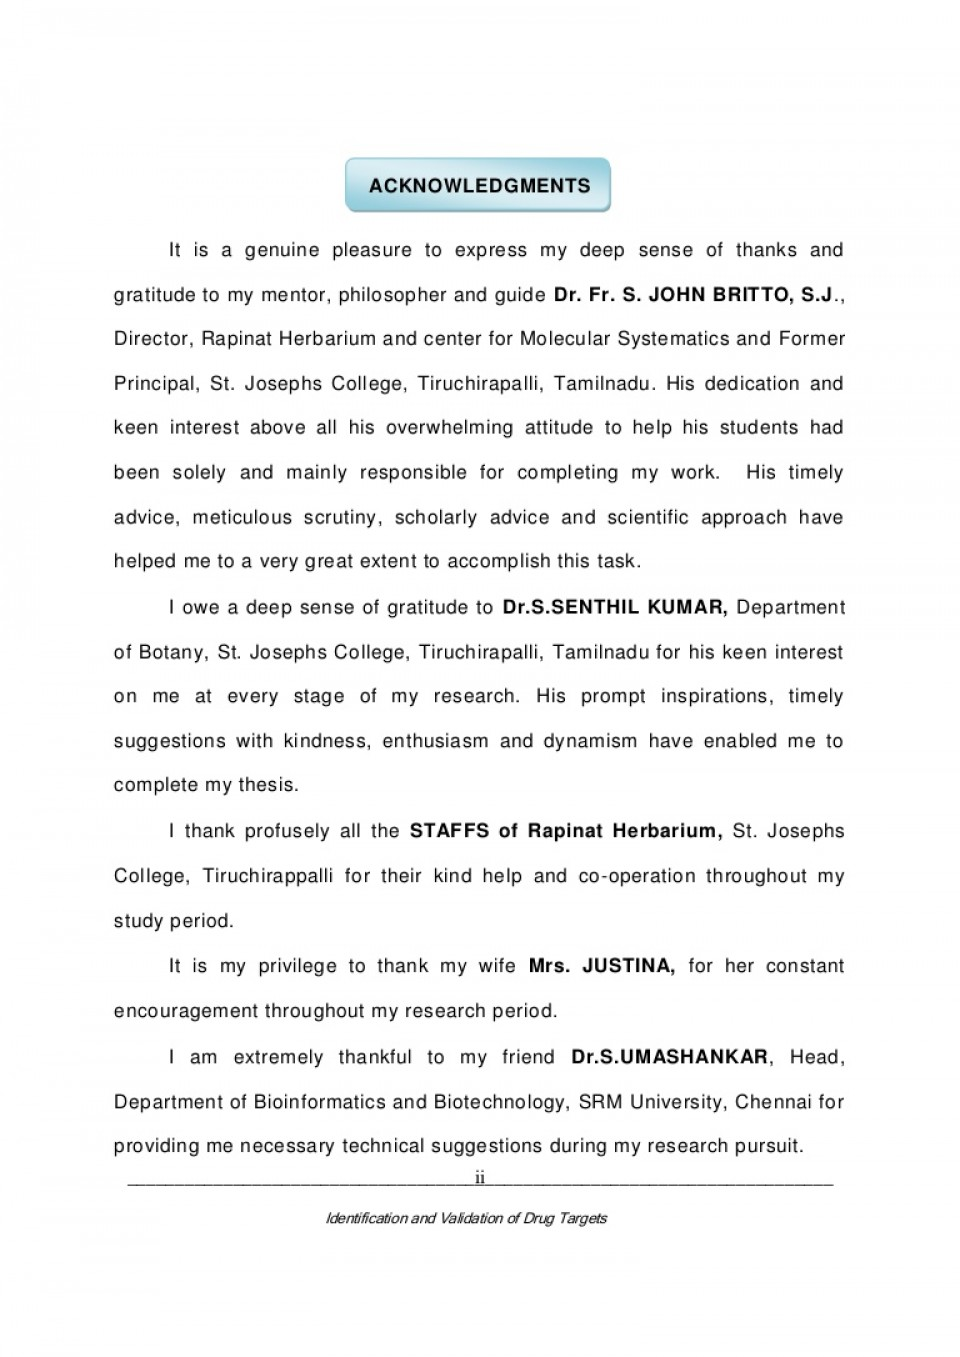 001 Acknowledgements Phpapp02 Thumbnail Research Paper Acknowledgement For Unbelievable Students 960